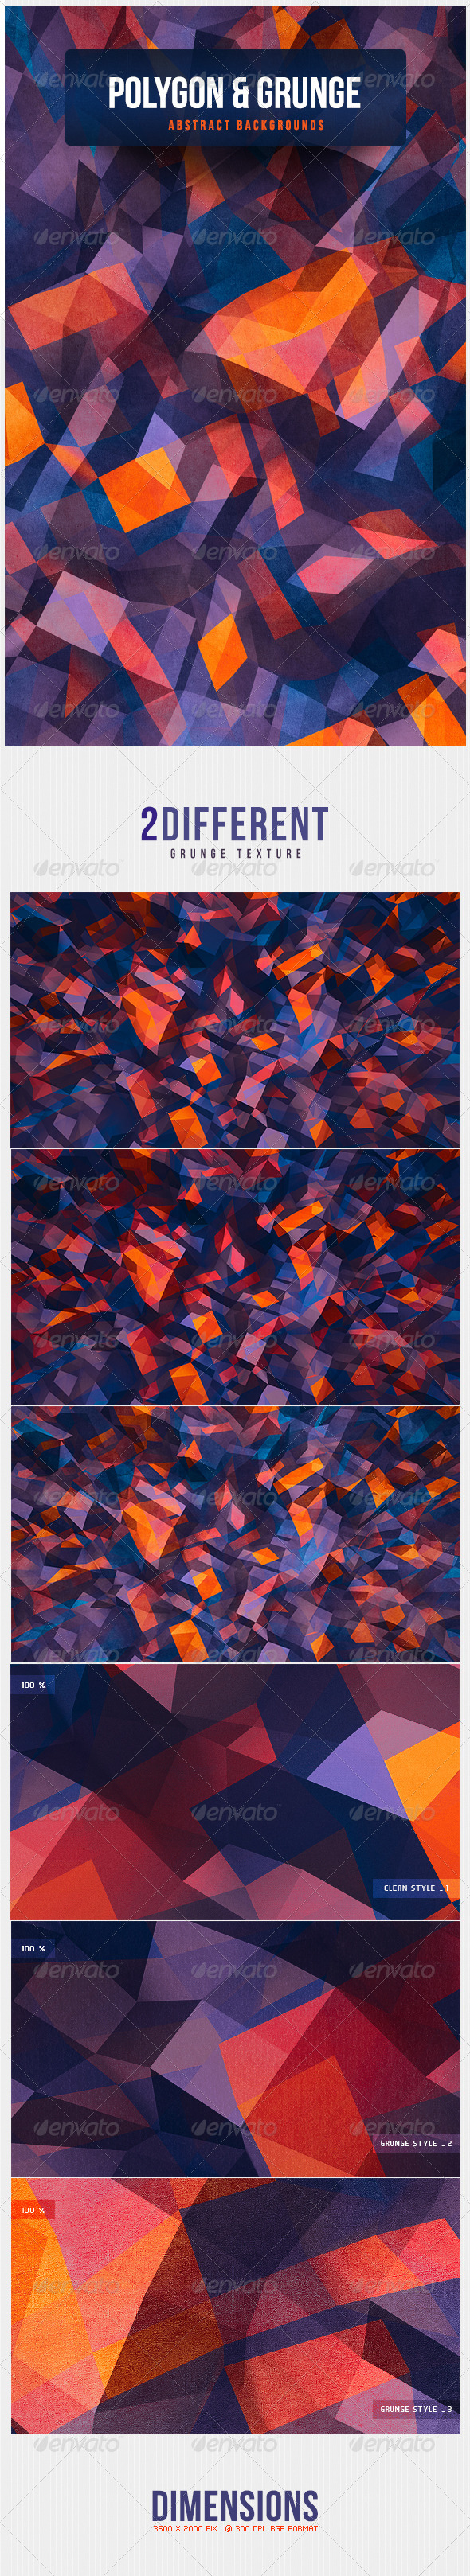 GraphicRiver Polygon & Grunge Abstract Backgrounds 4712946